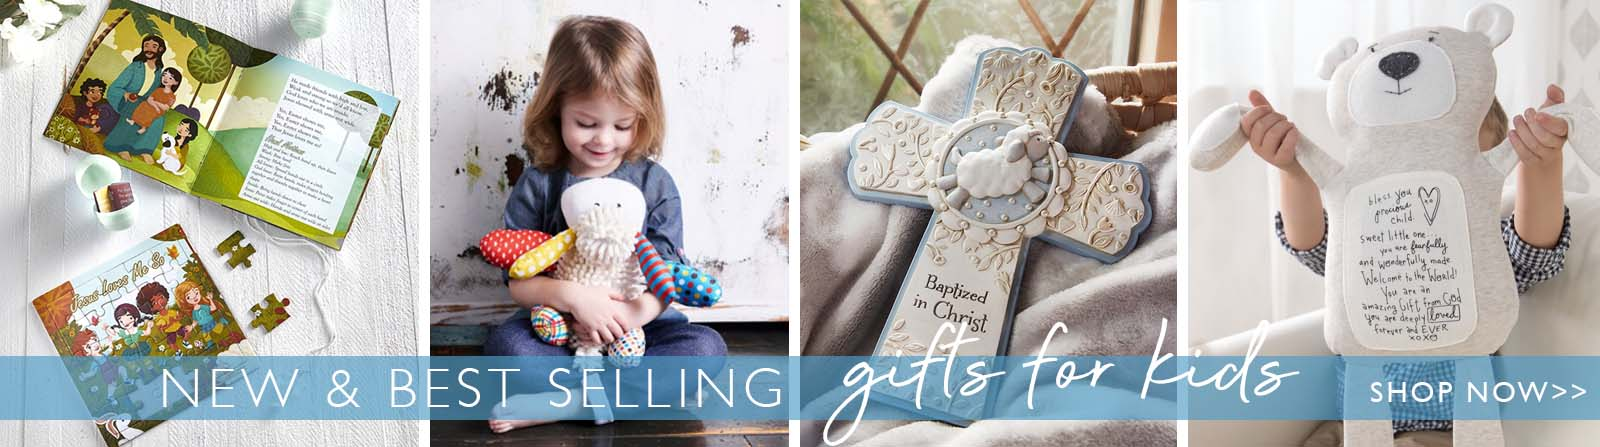 New & Bestselling gifts for kids